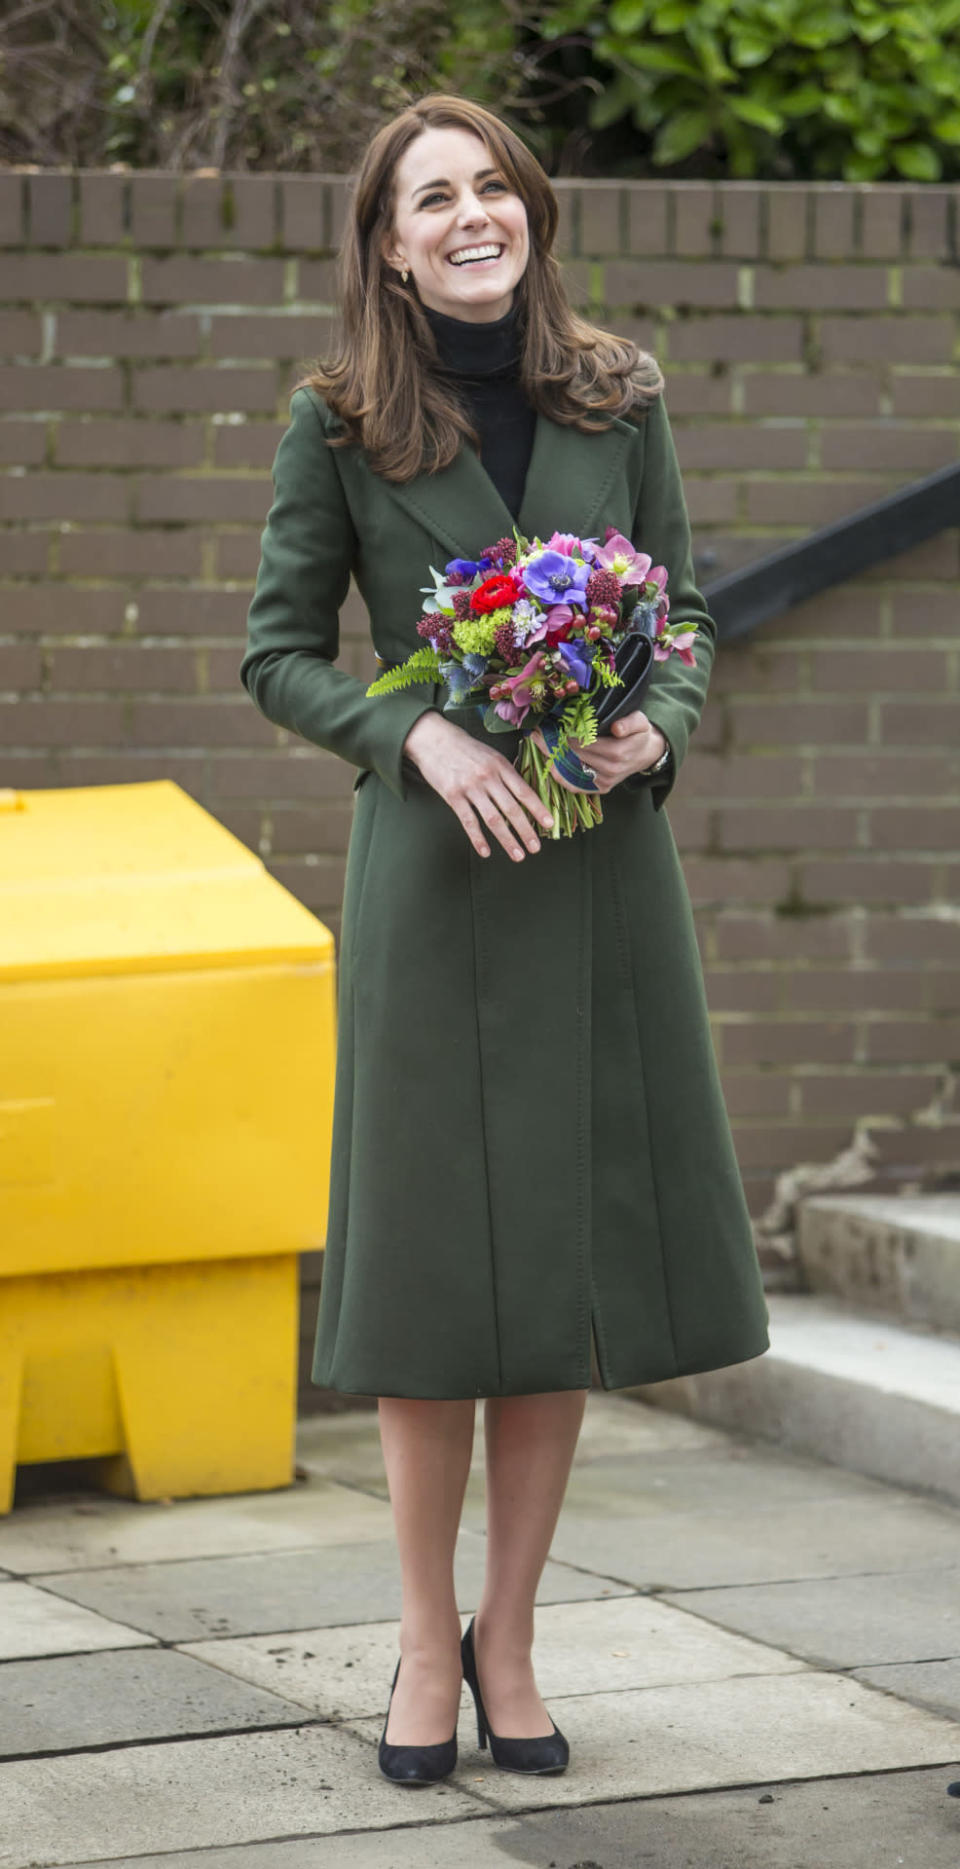 <p>During her first solo trip to Scotland, Kate dressed in a dark green coat by Max Mara. She finished the look with a Mulberry clutch and black Stuart Weitzman pumps.</p><p><i>[Photo: PA]</i></p>